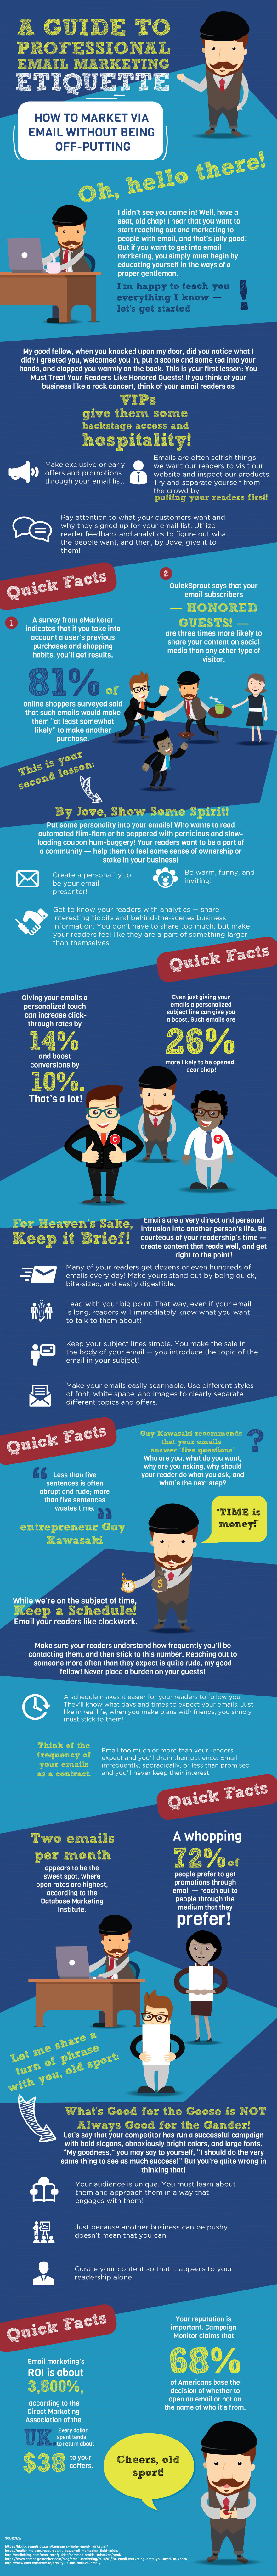 A Guide to Professional Email Marketing Etiquette - BookYourData.com - Infographic